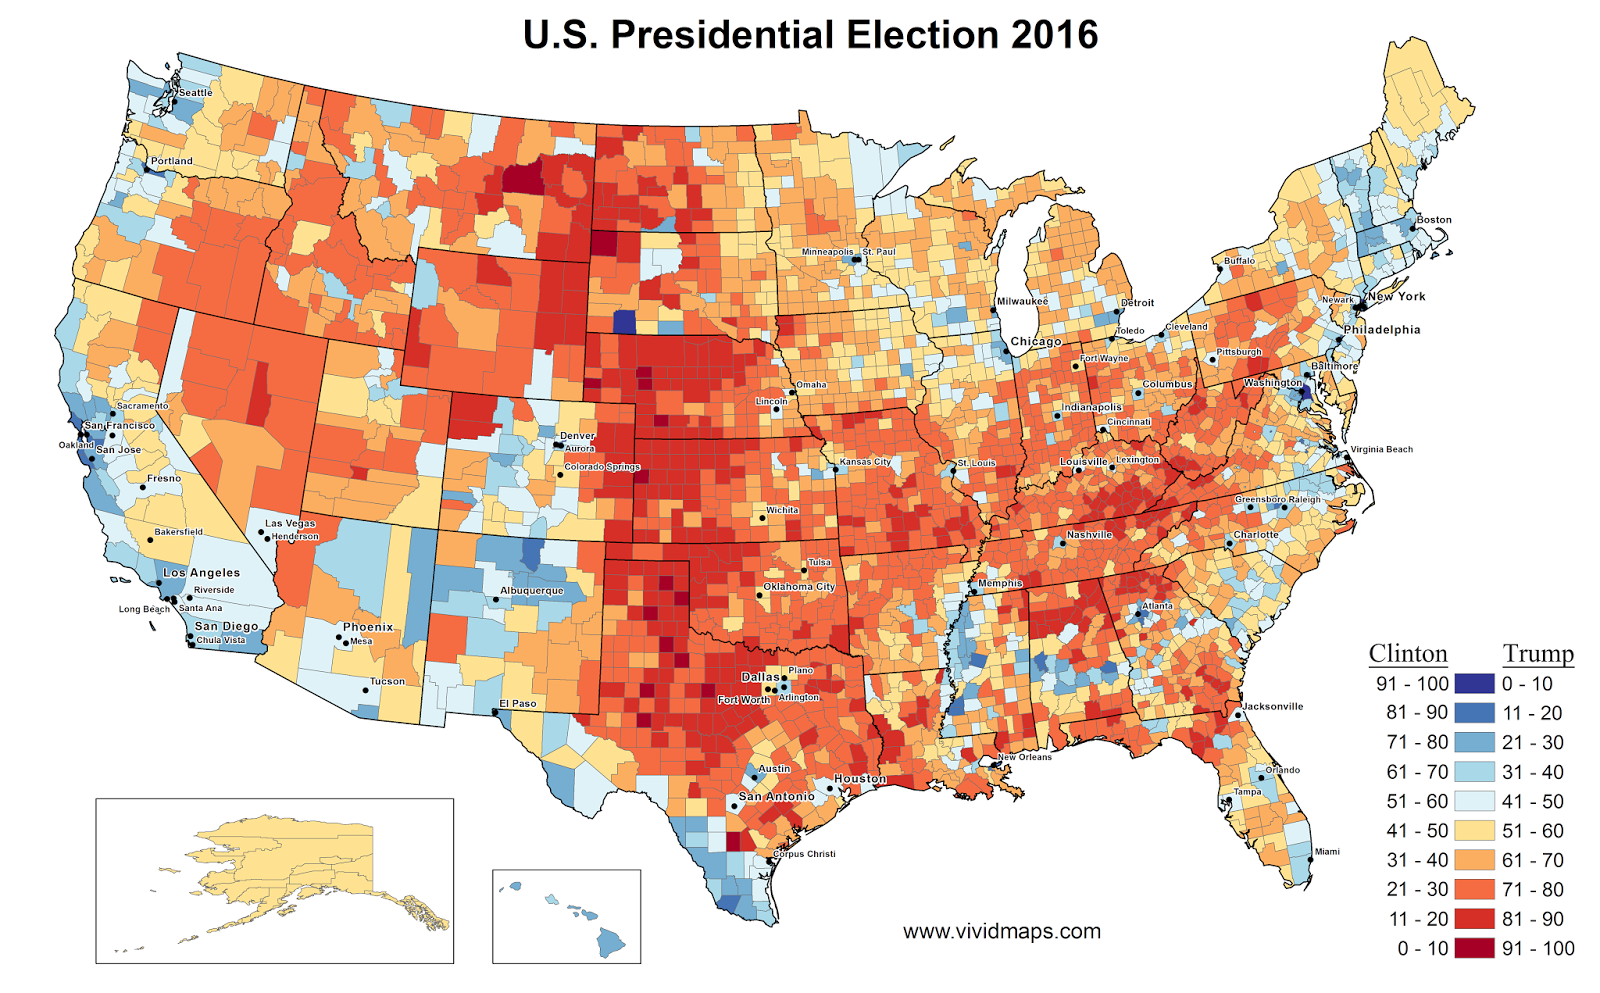 US Presidential Election Results In Three Maps Vivid Maps - Us election 2016 results map